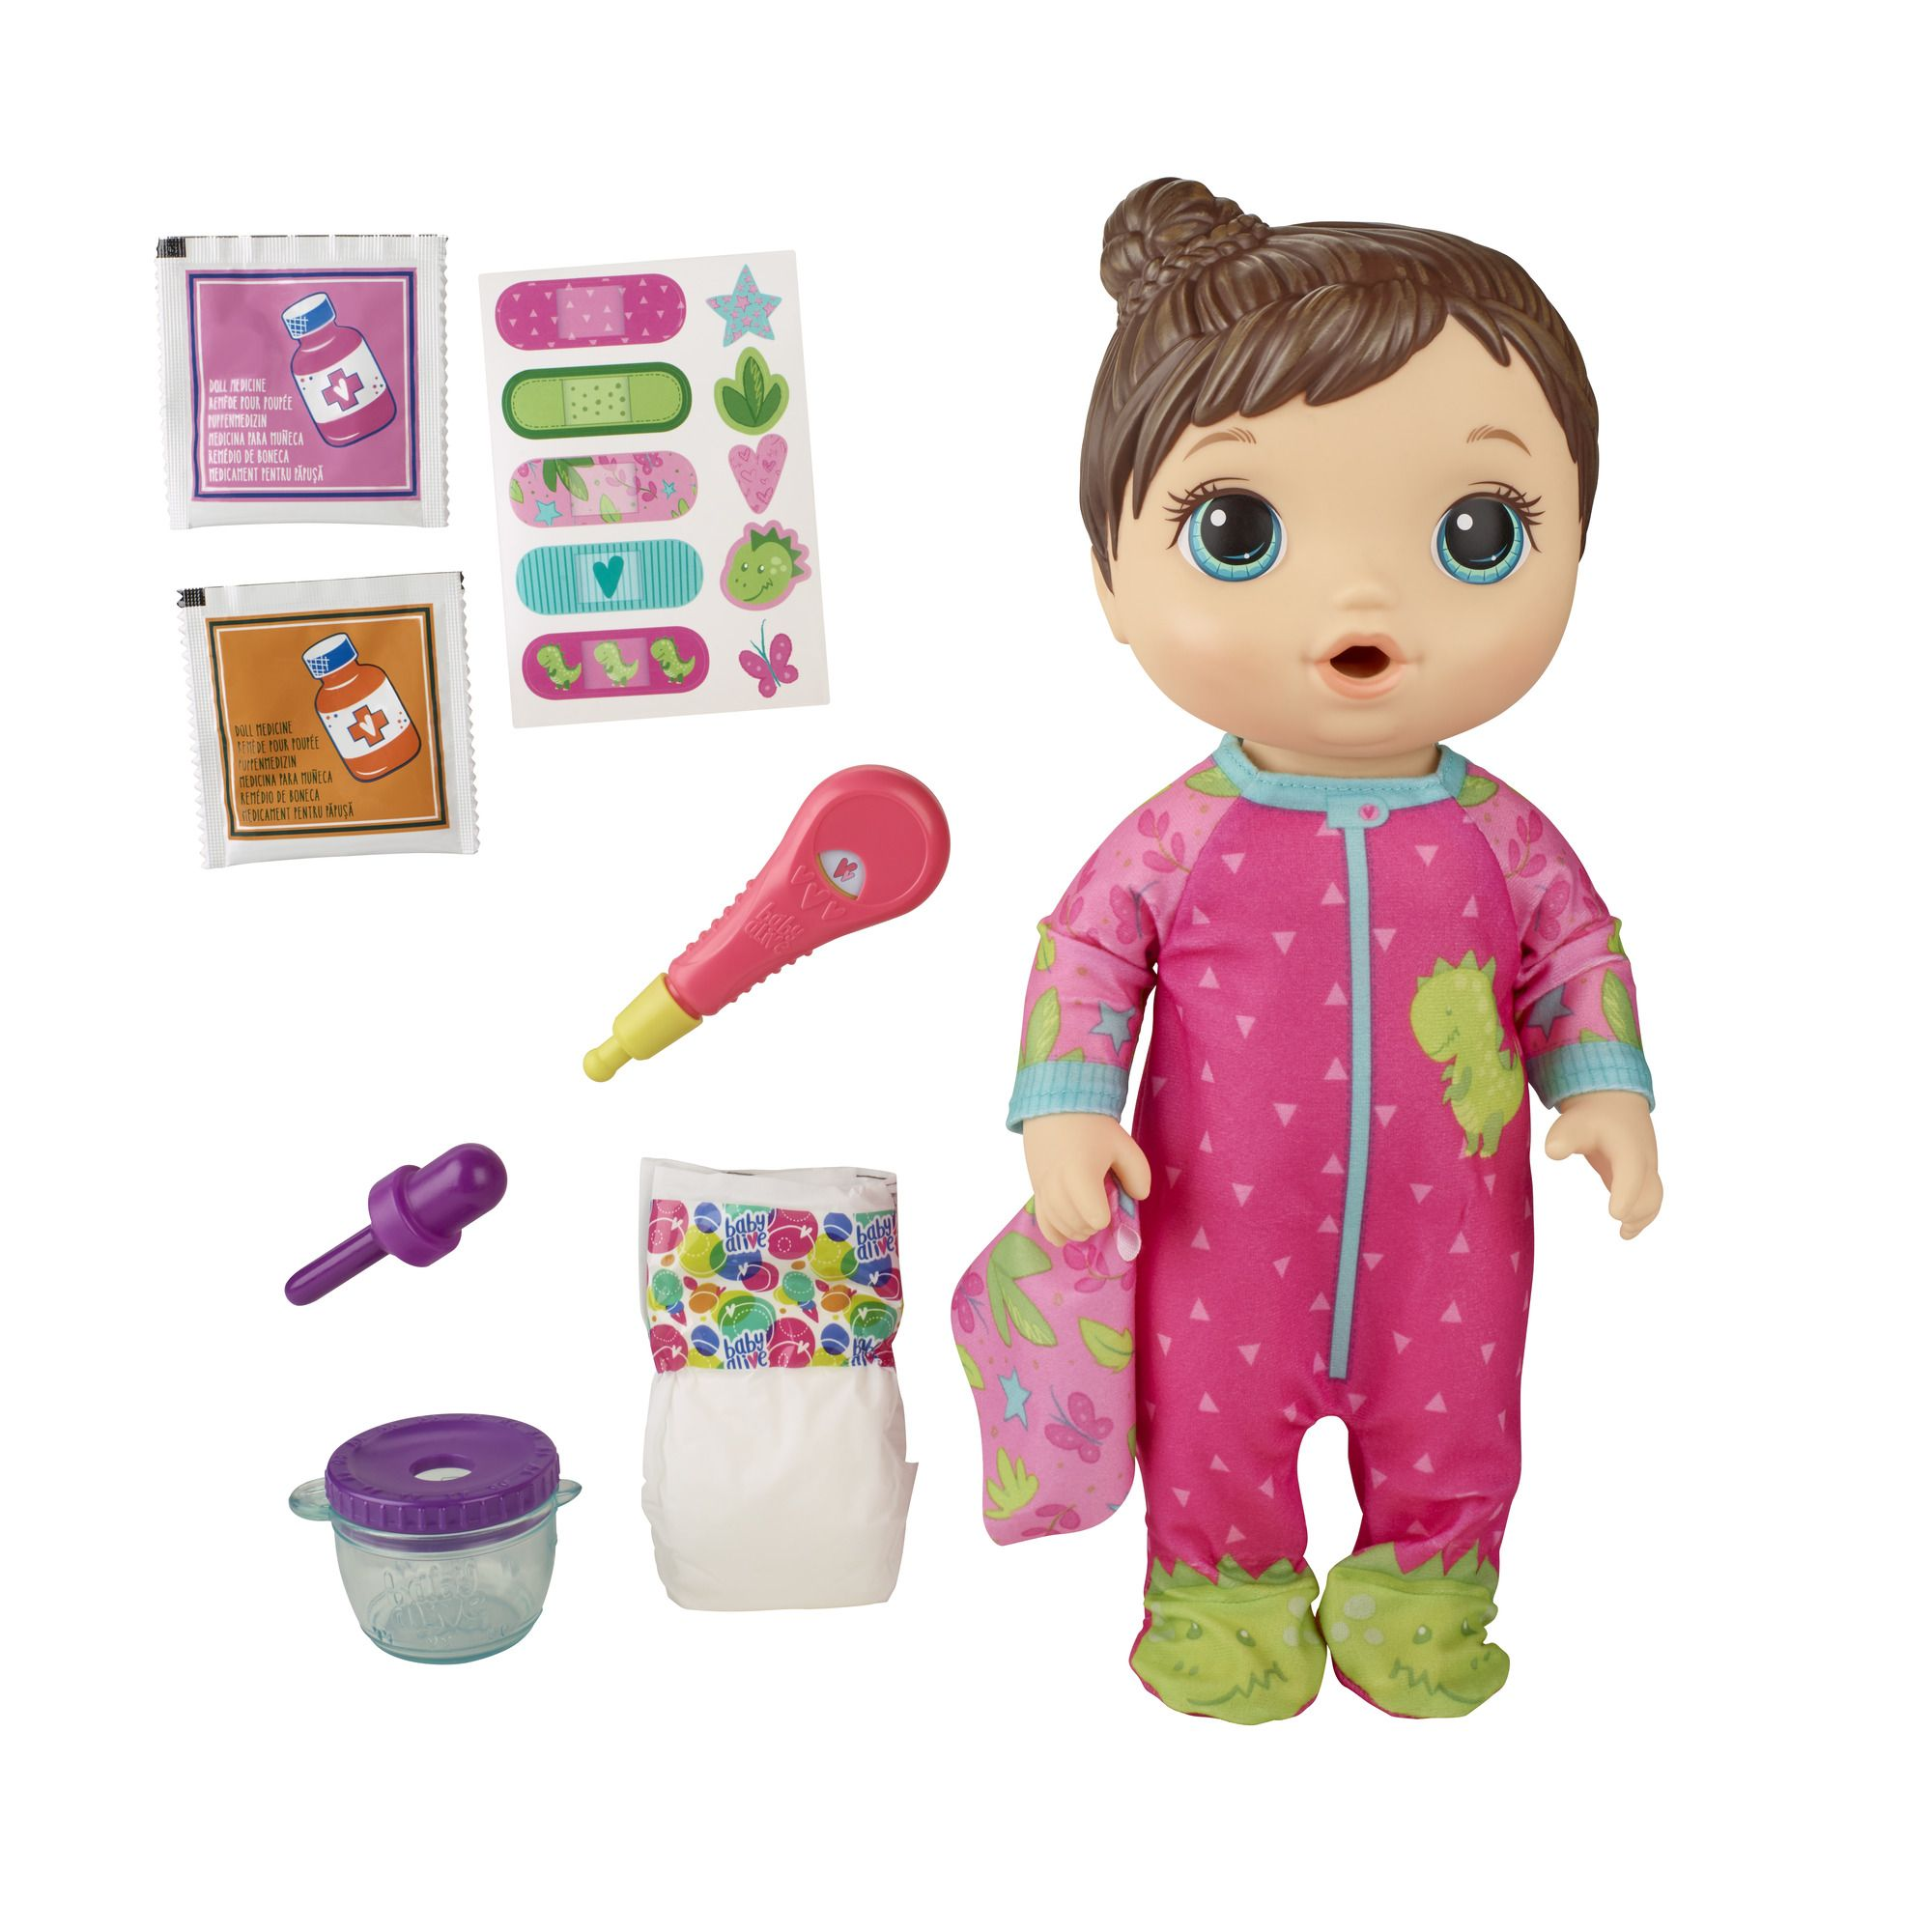 Baby Alive Mix My Medicine Doll Dinosaur Pajamas Doctor Accessories Drinks And Wets Walmart Com In 2020 Baby Alive Interactive Baby Dolls Baby Dolls